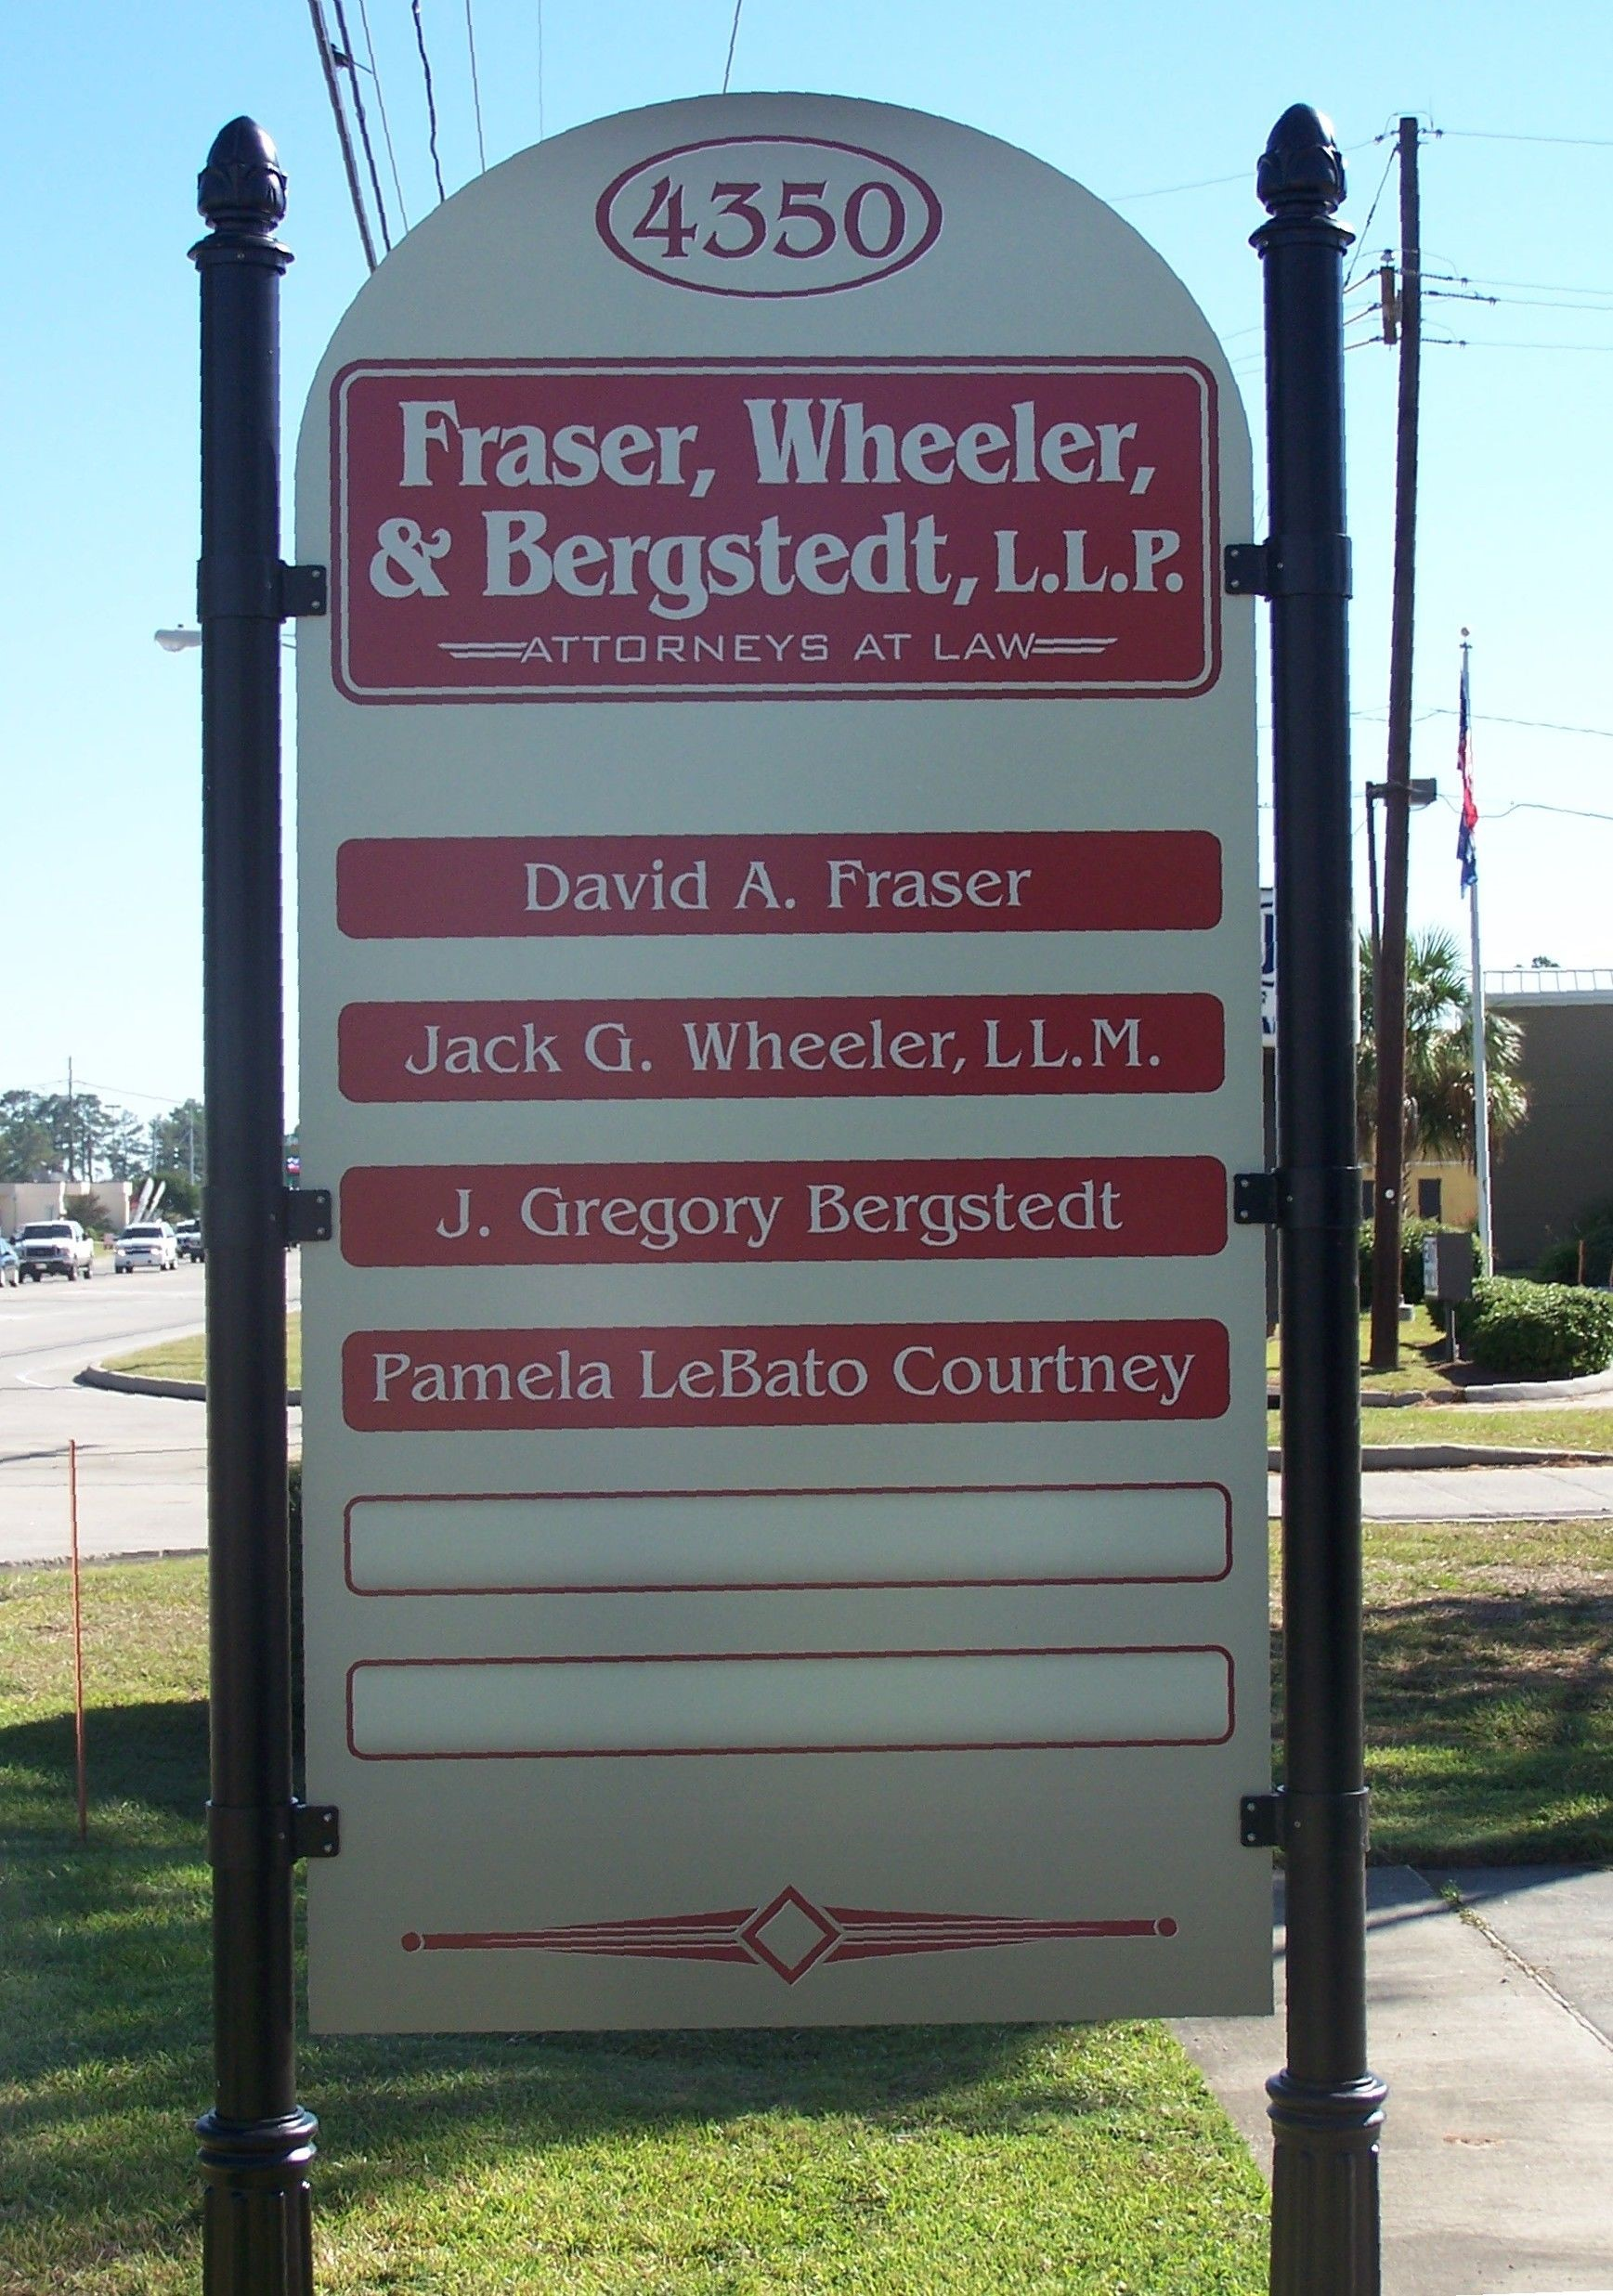 Fraser, Wheeler, & Bergstedt Post and Panel Signage in Lake Charles, LA